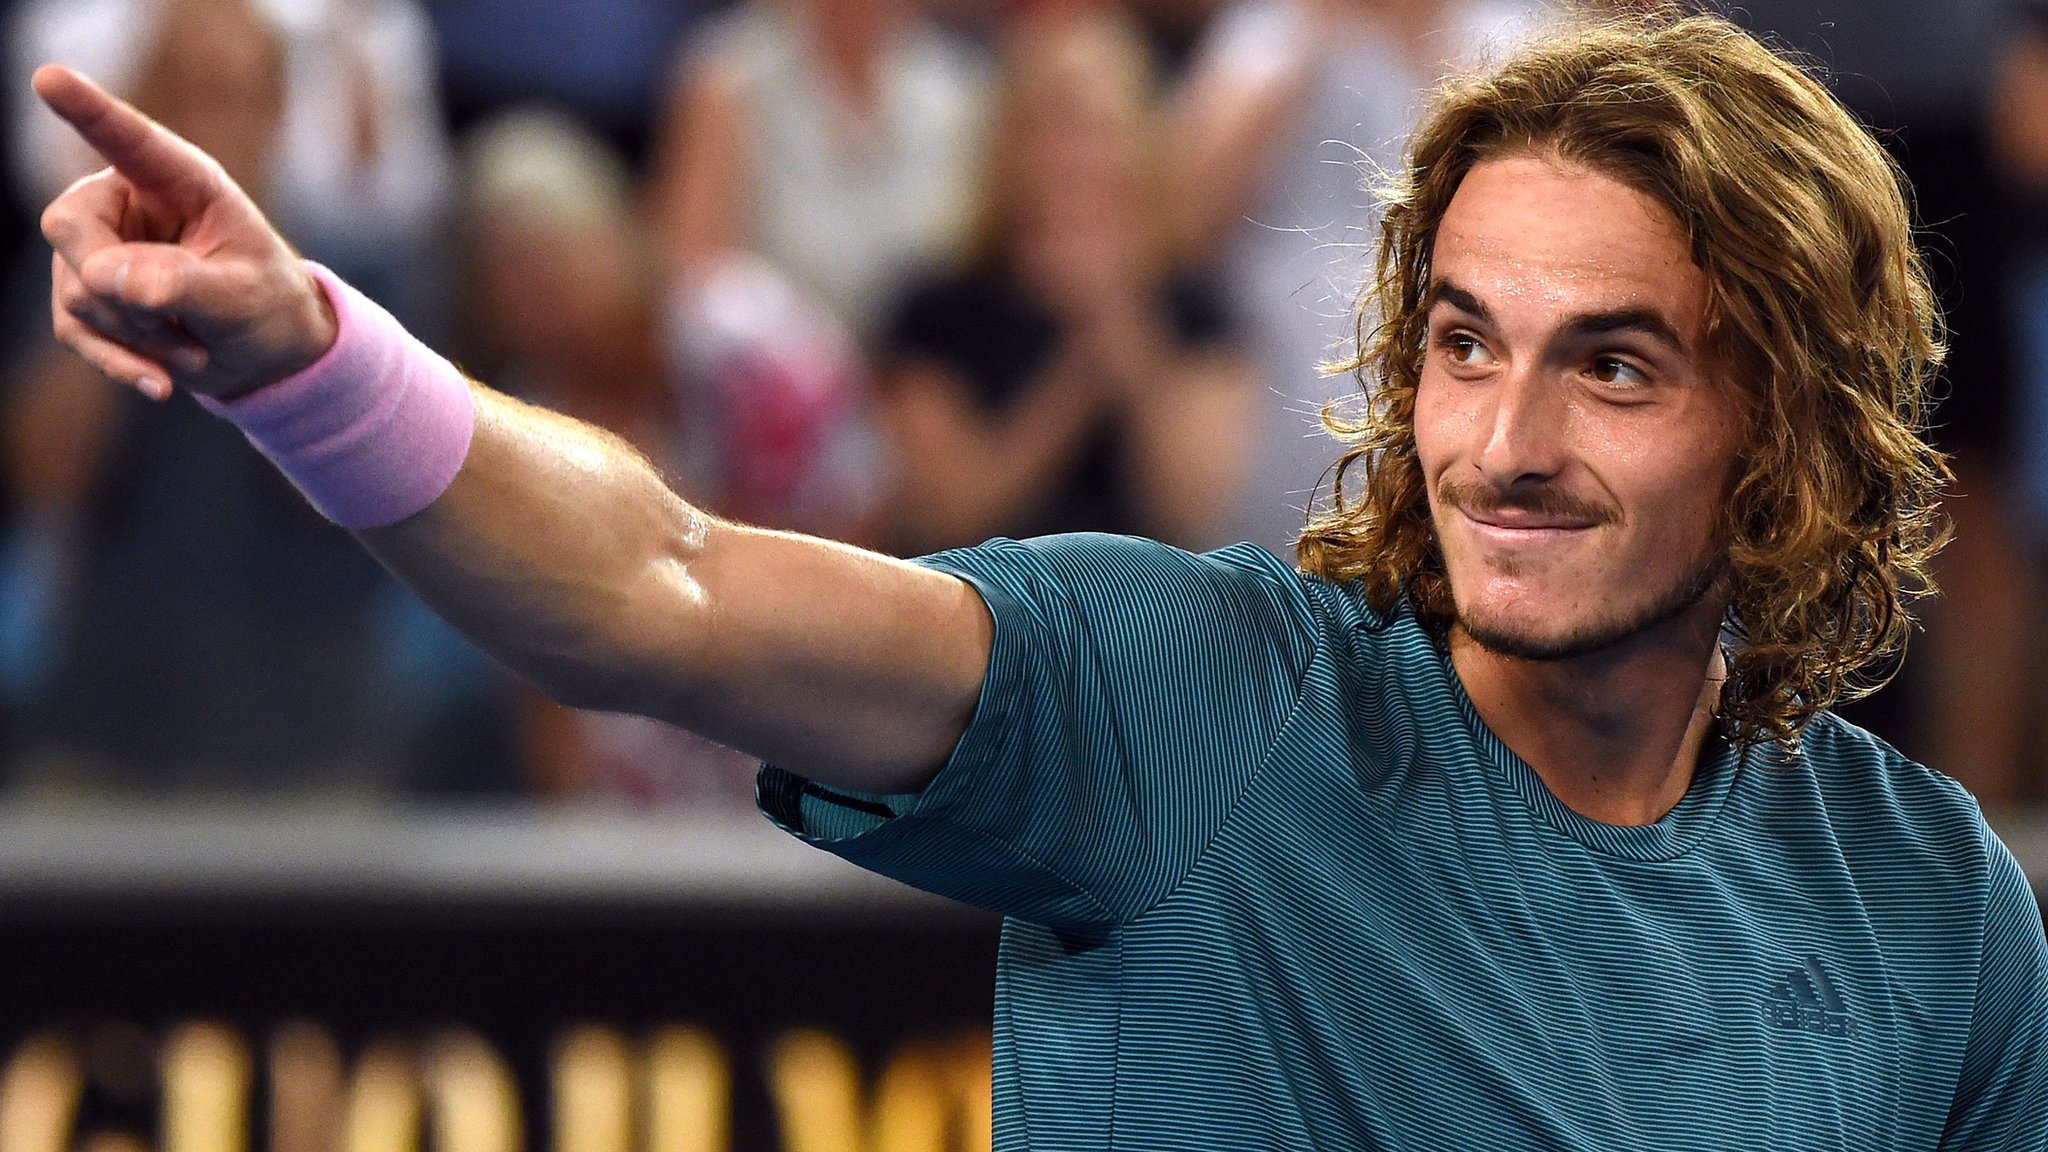 From studying Federer on YouTube to beating him in Melbourne - who is Stefanos Tsitsipas?